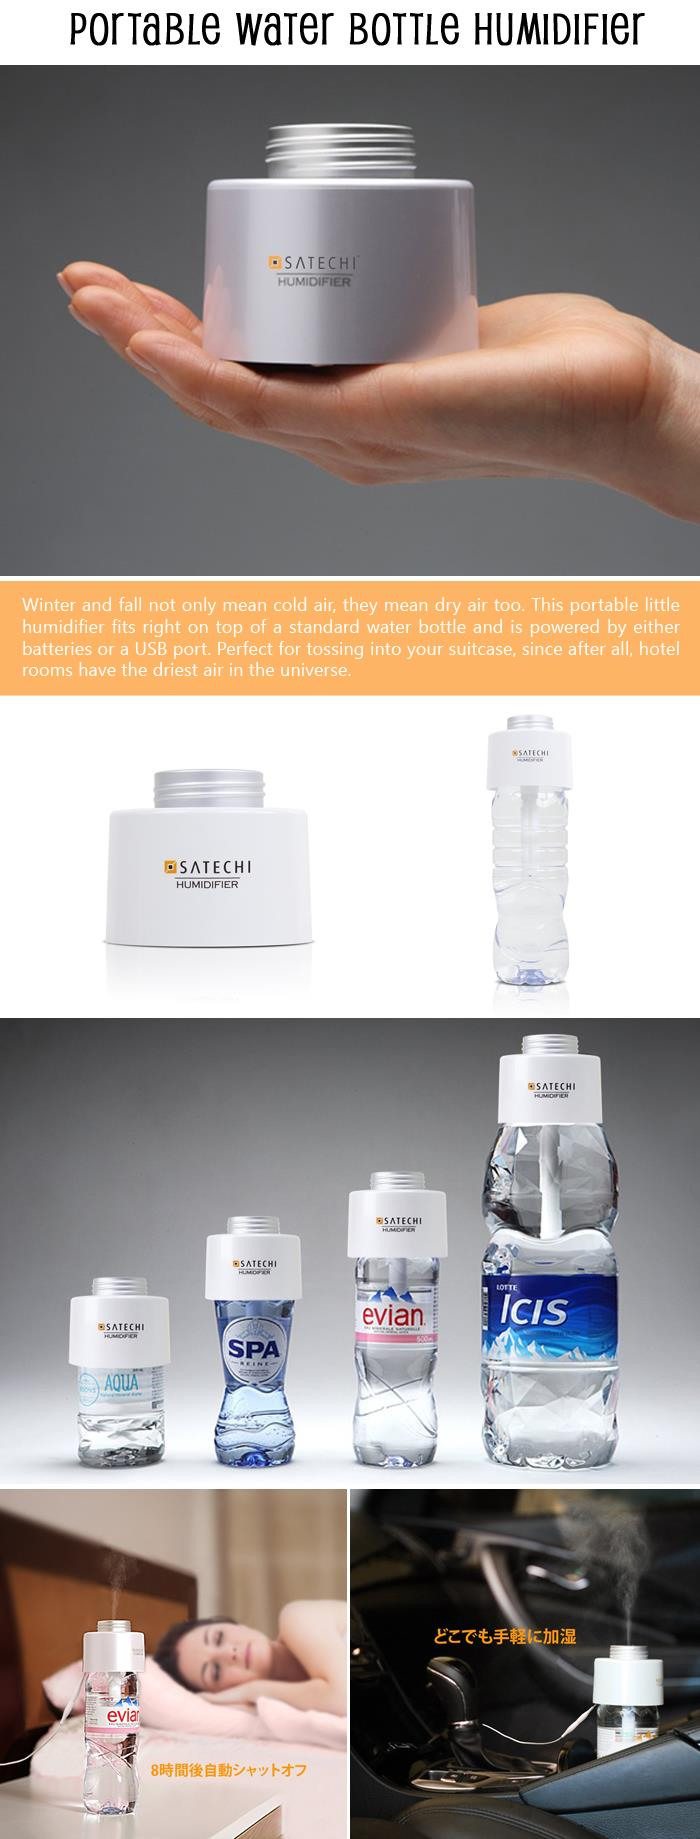 Portable Water Bottle Humidifier